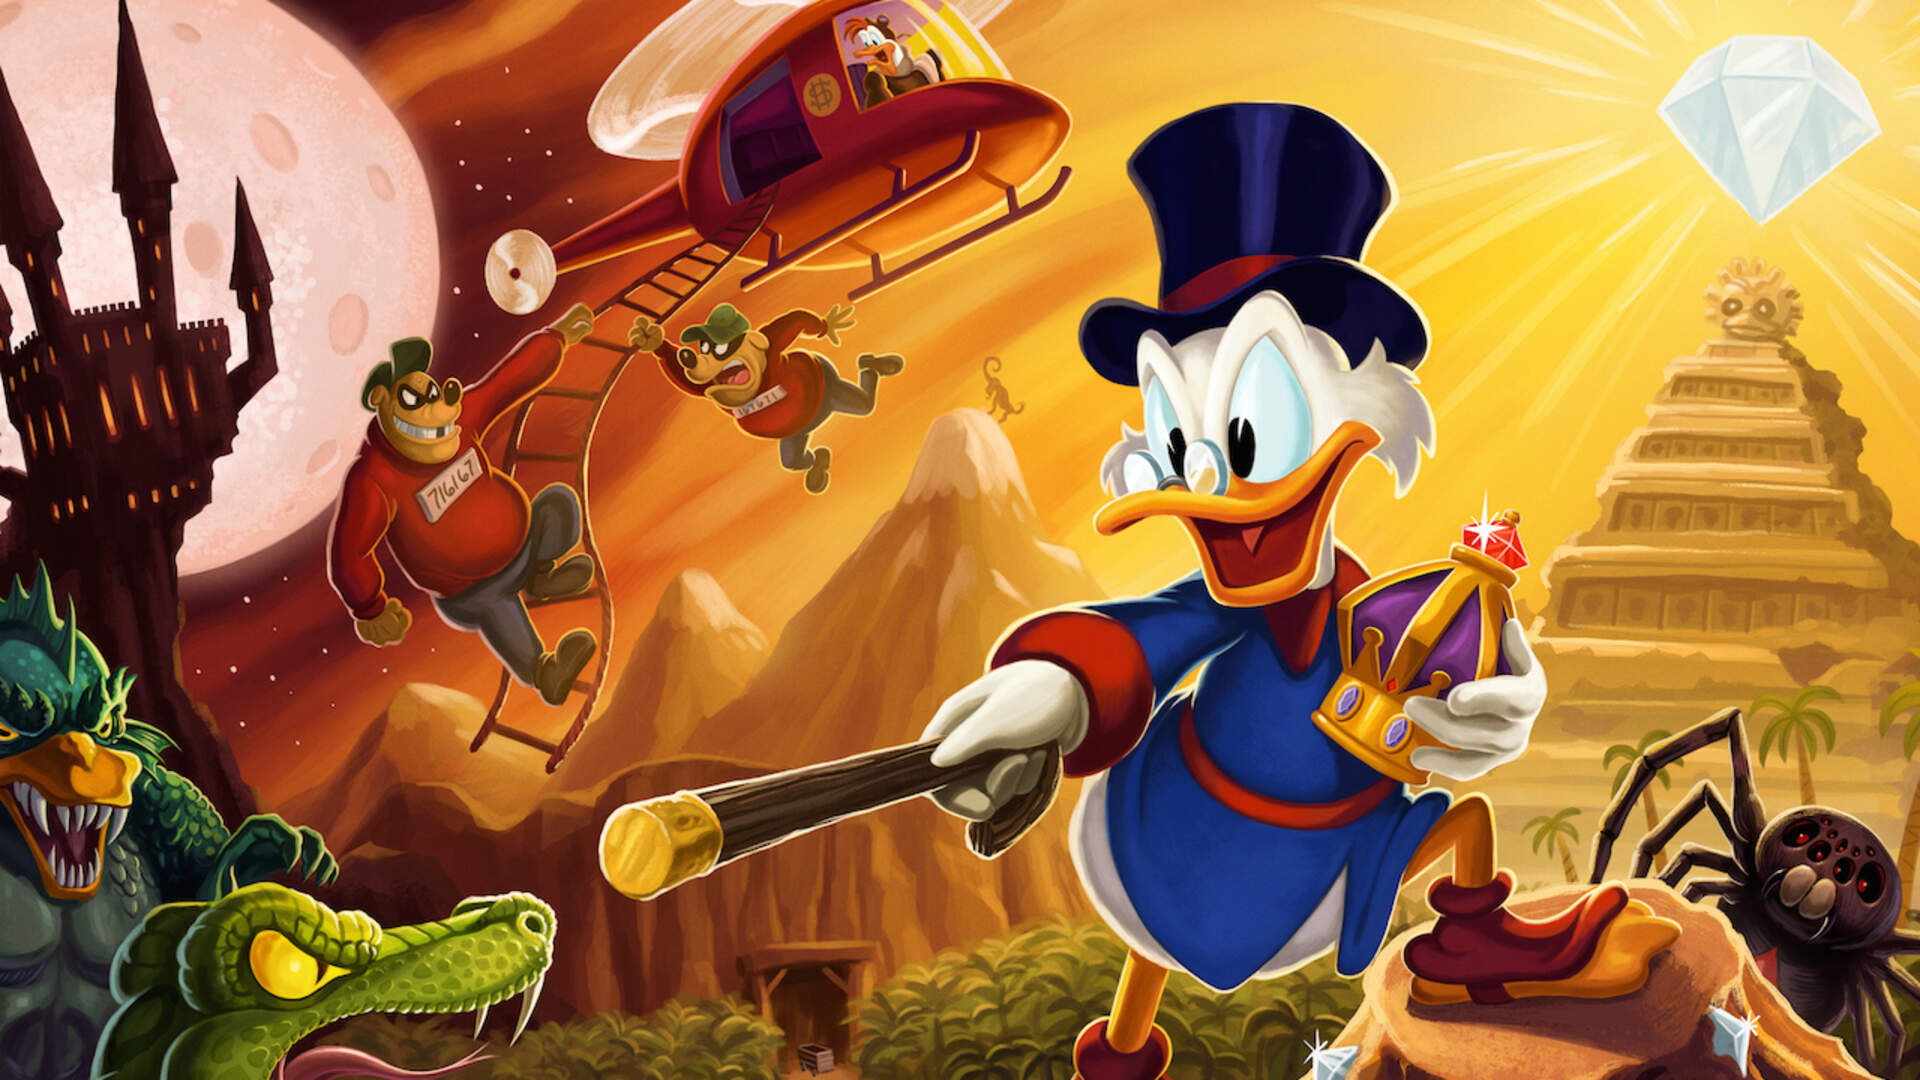 DuckTales Remastered Is Back After Its Unexplained Removal From Digital Storefronts